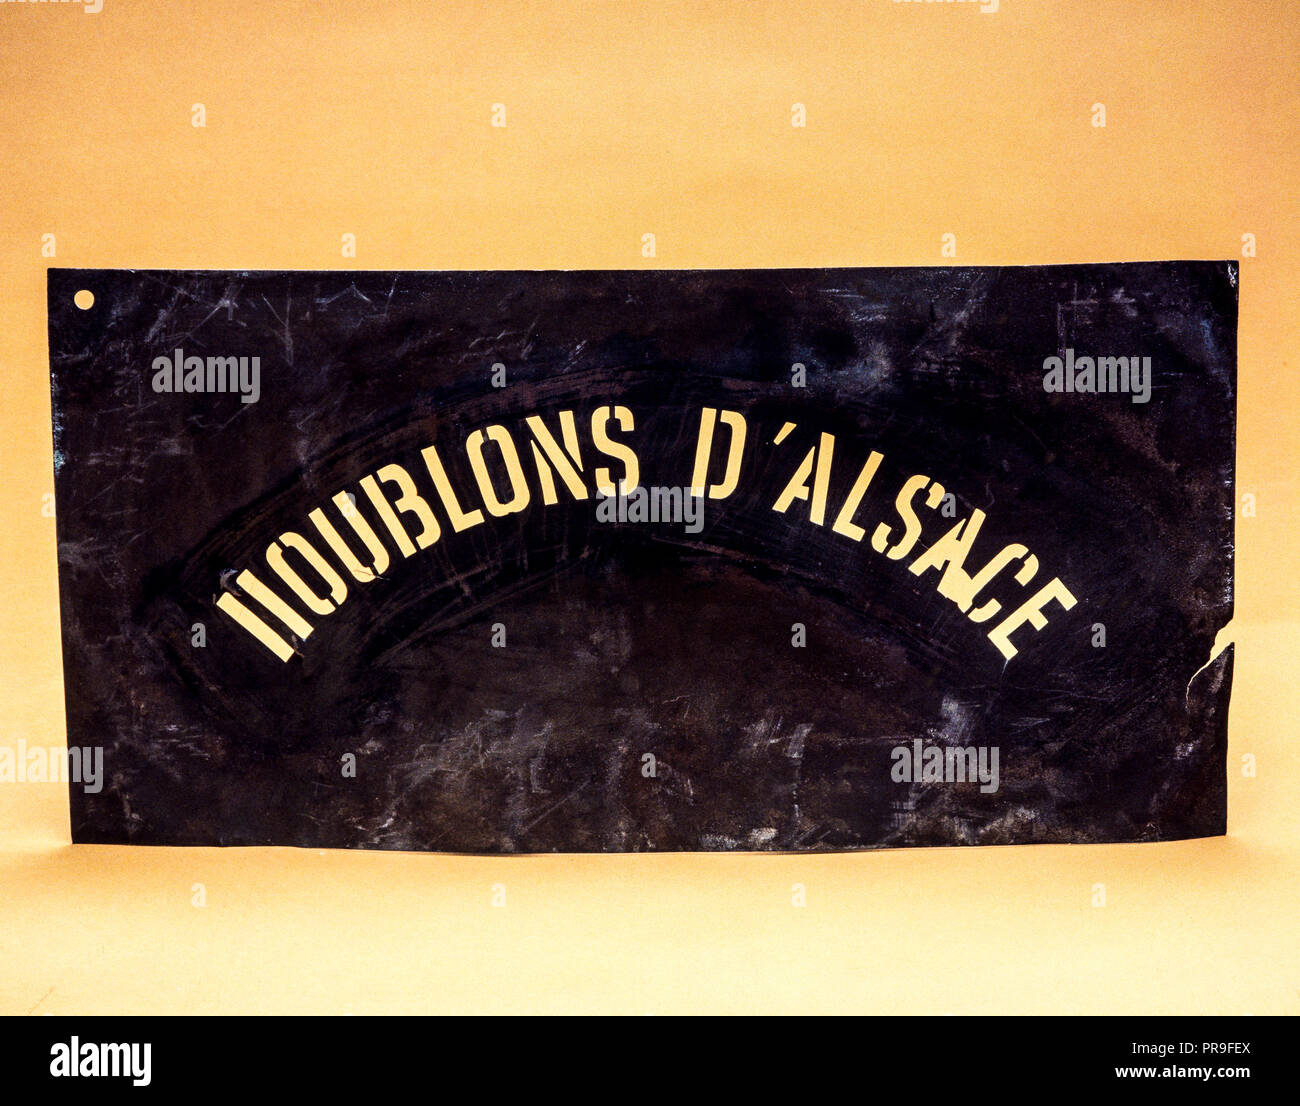 Stencil used for lettering hop bags, Houblons d'Alsace, hops from Alsace, origin name, France, Europe, - Stock Image